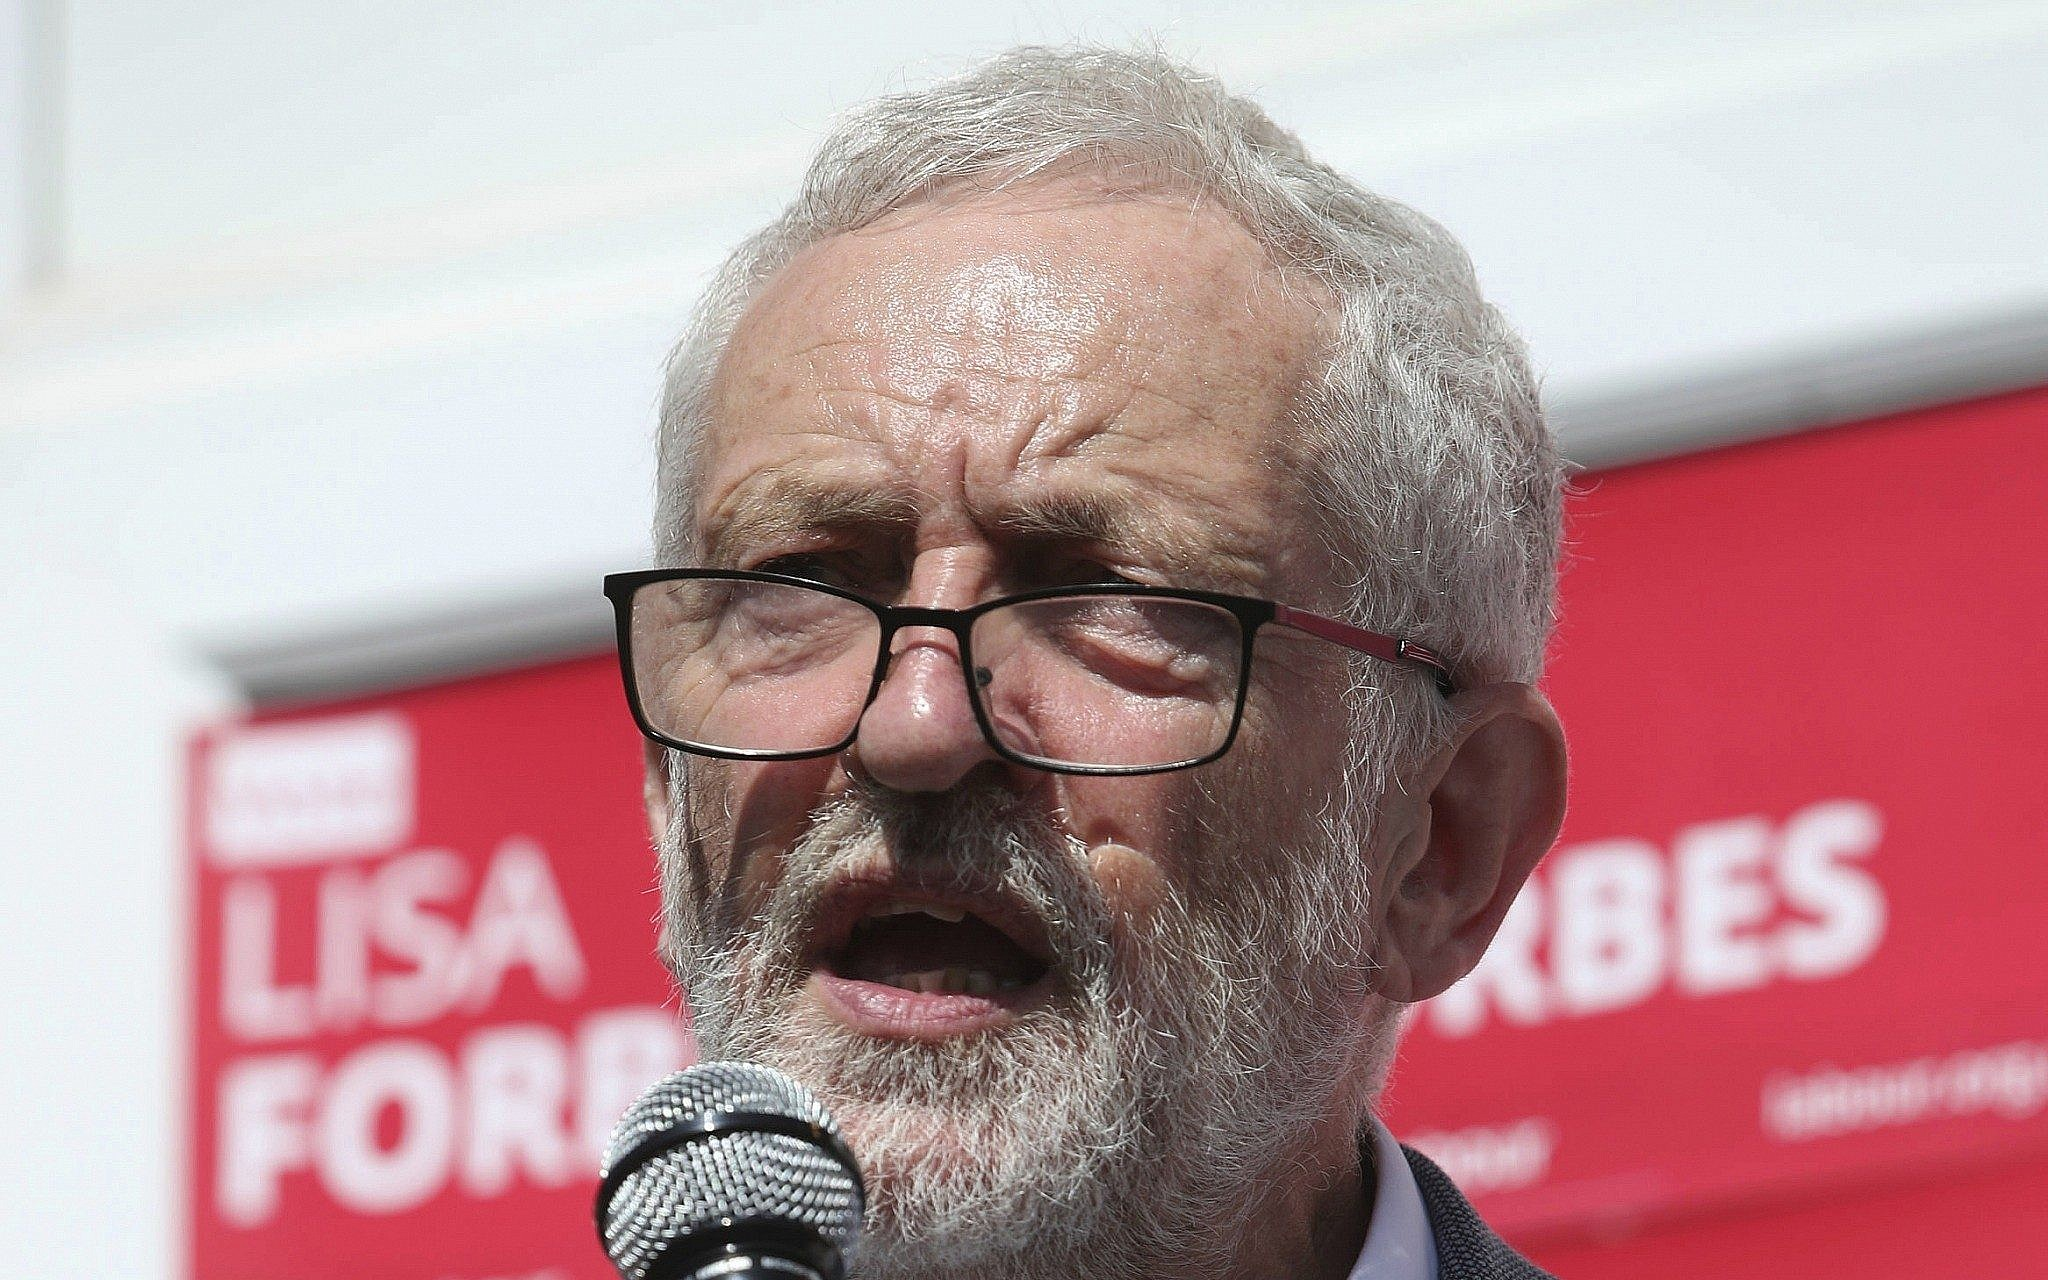 Labour's general secretary accused of 'interference' amid fresh anti-Semitism row